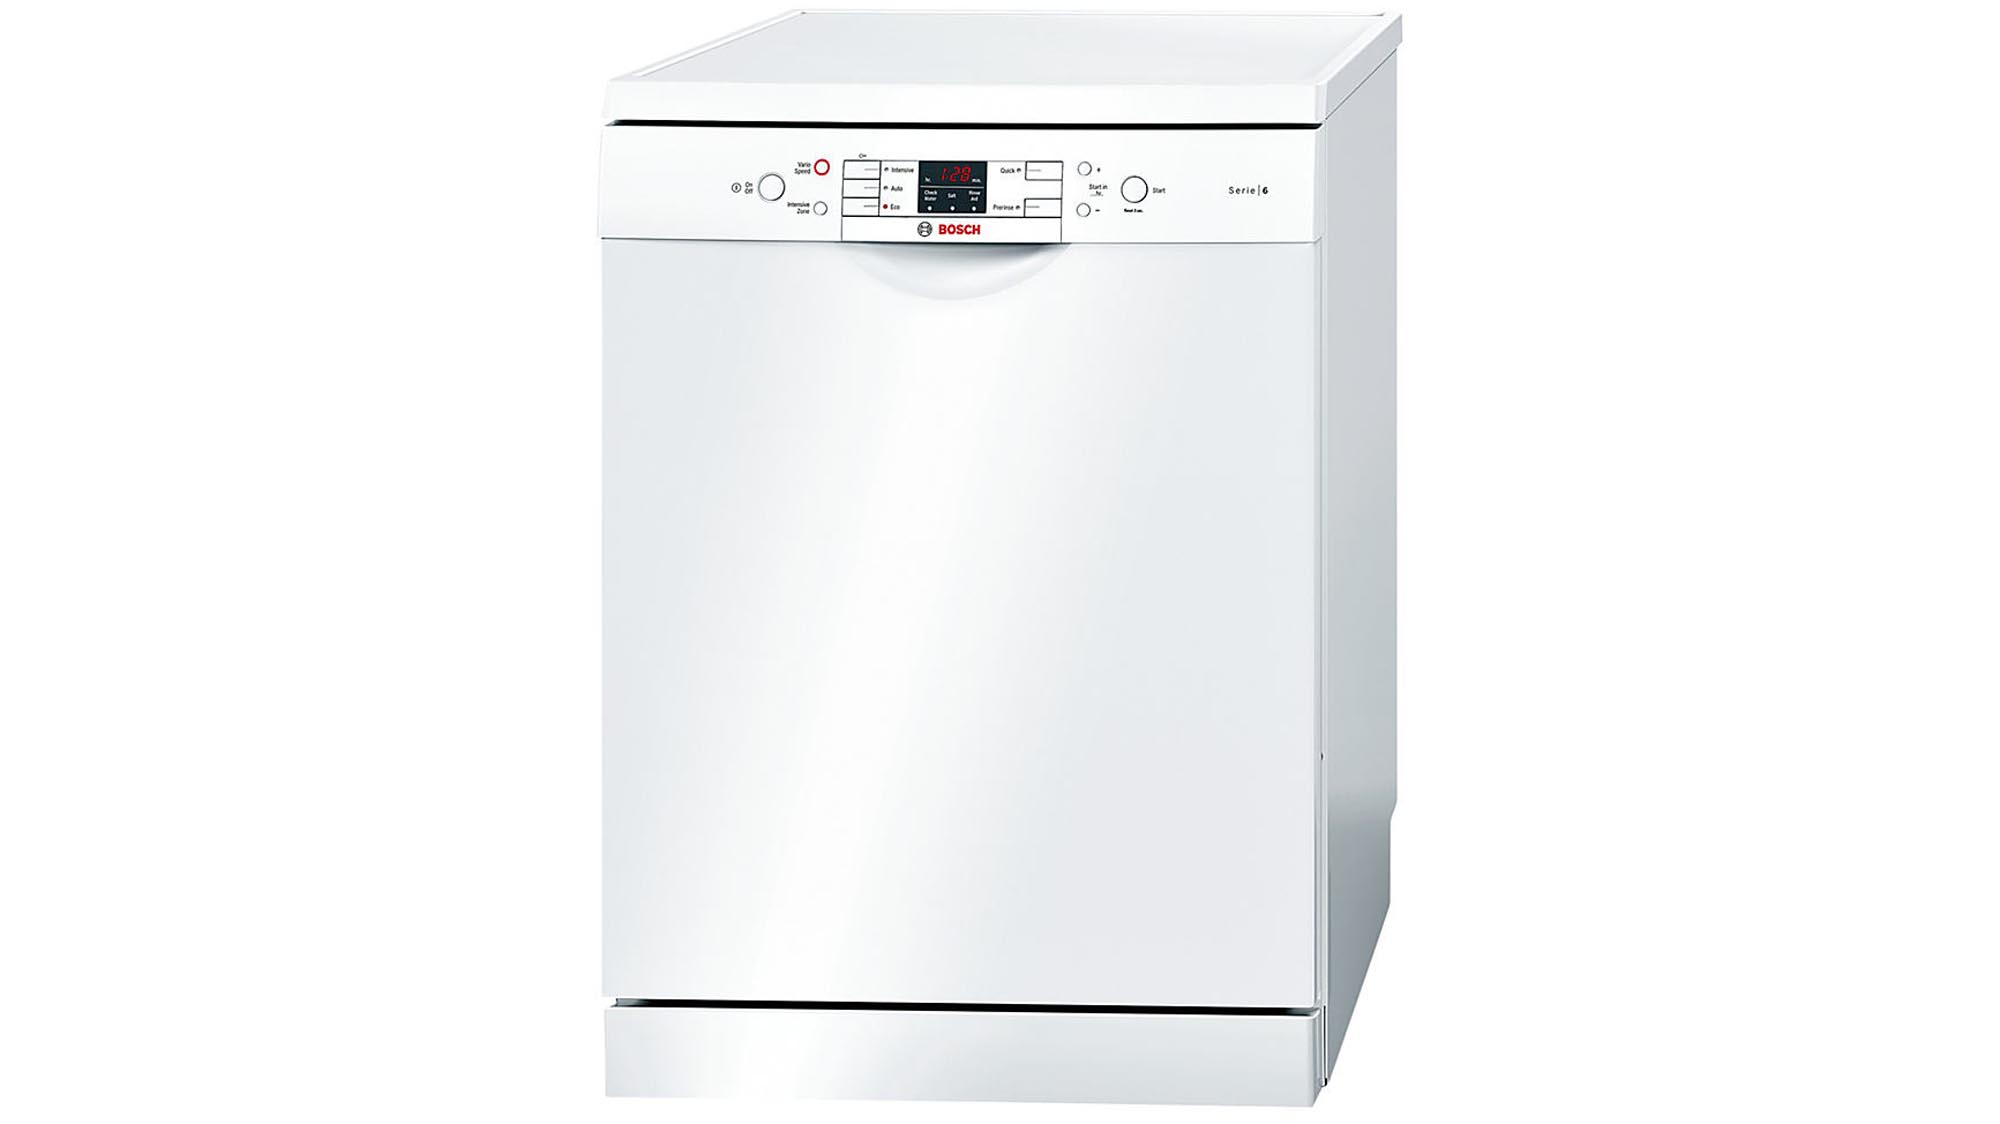 Dishwasher Brands Best Dishwasher The Best Dishwashers To Buy From Alb250 Expert